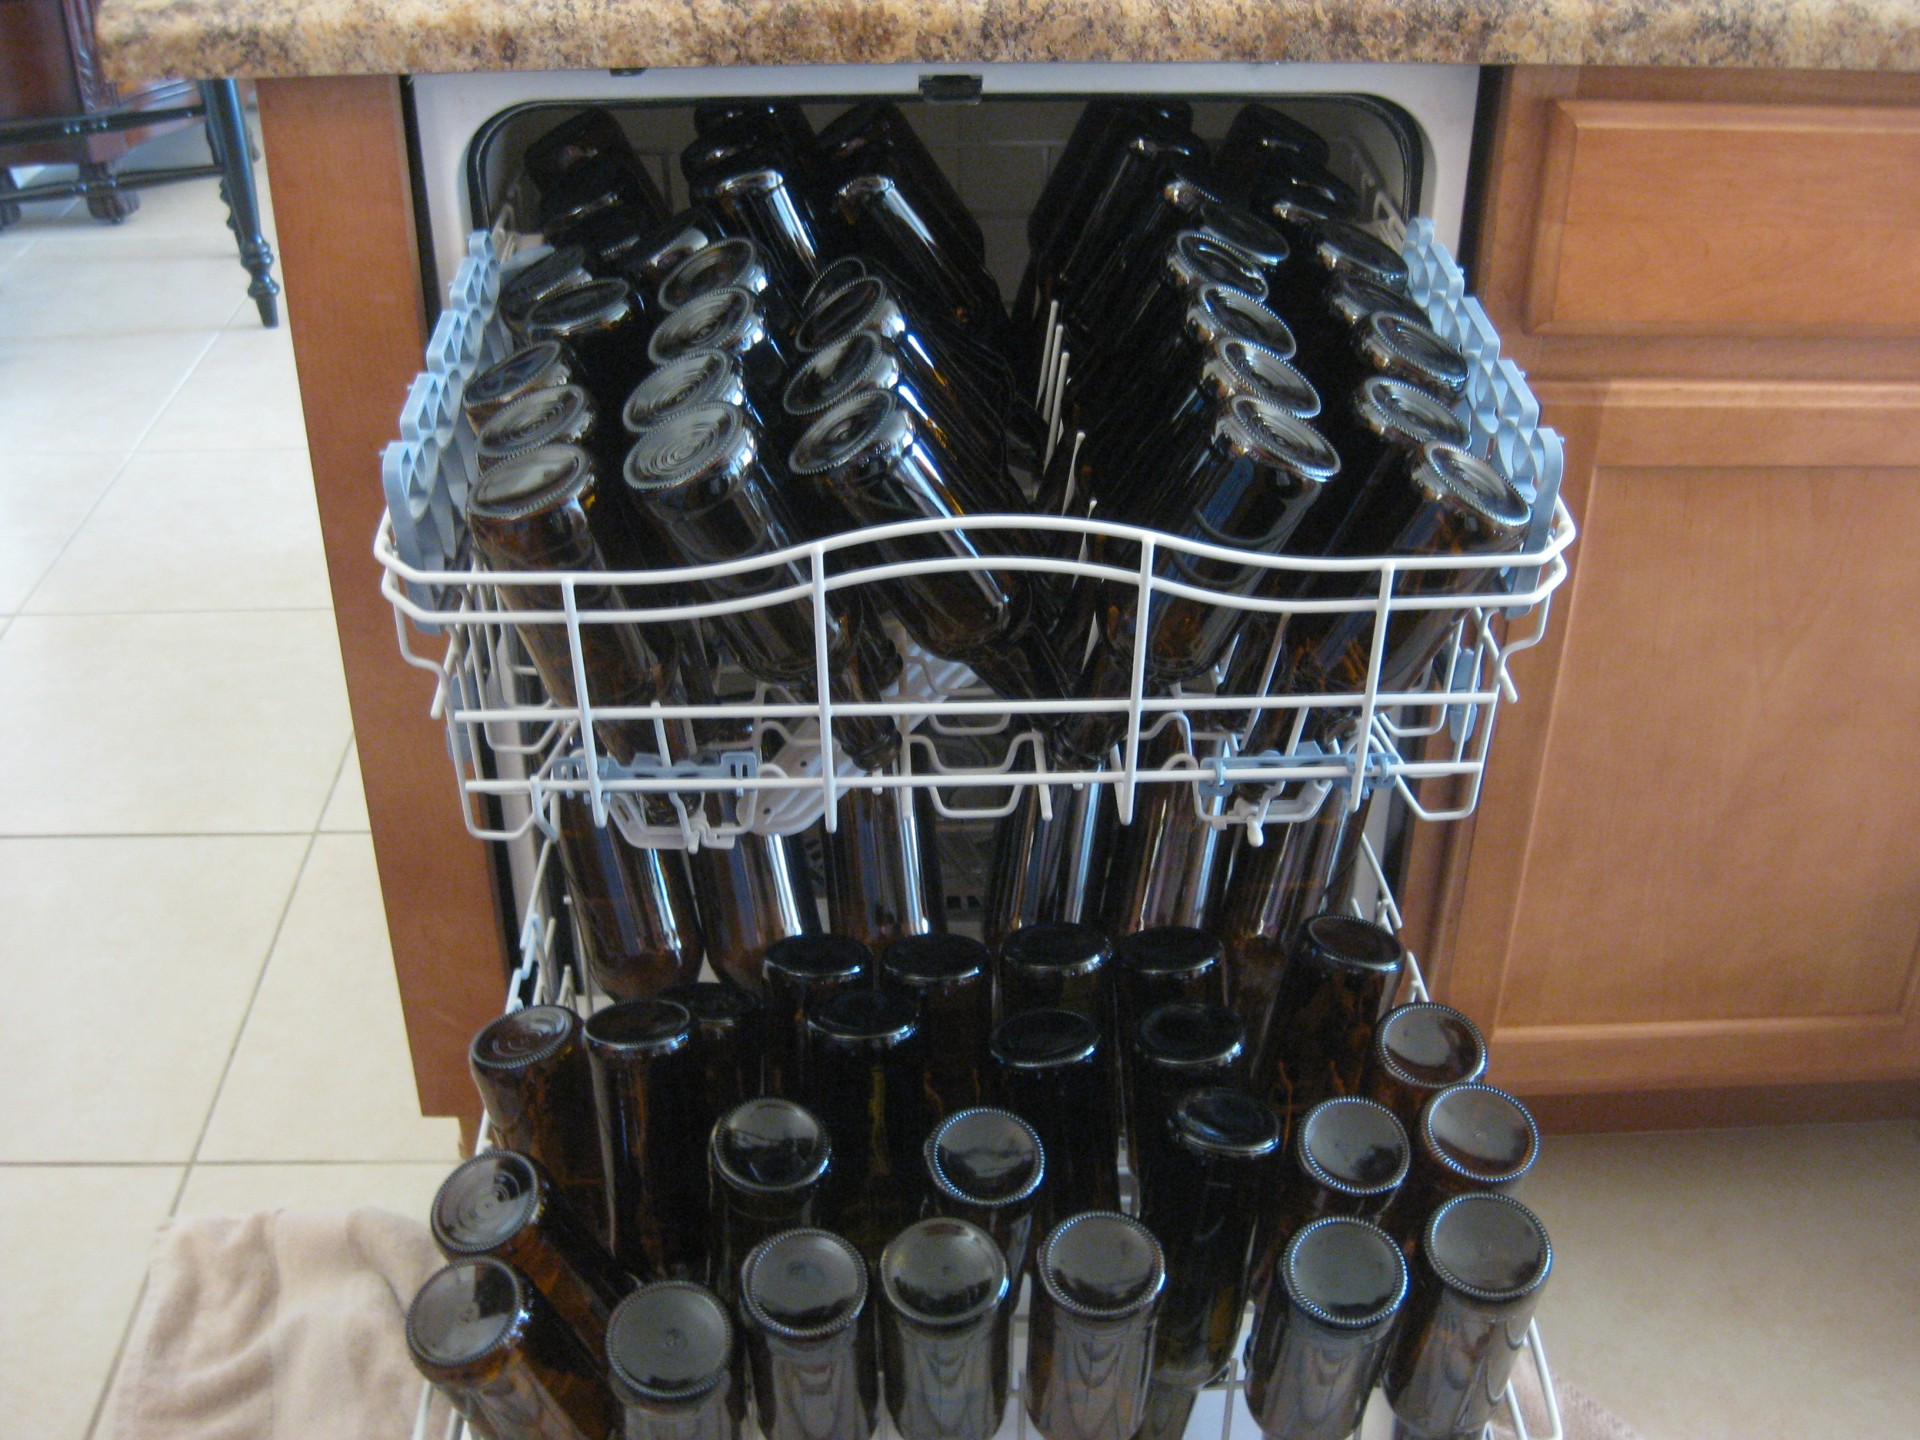 Dishwasher as a Bottling Tree